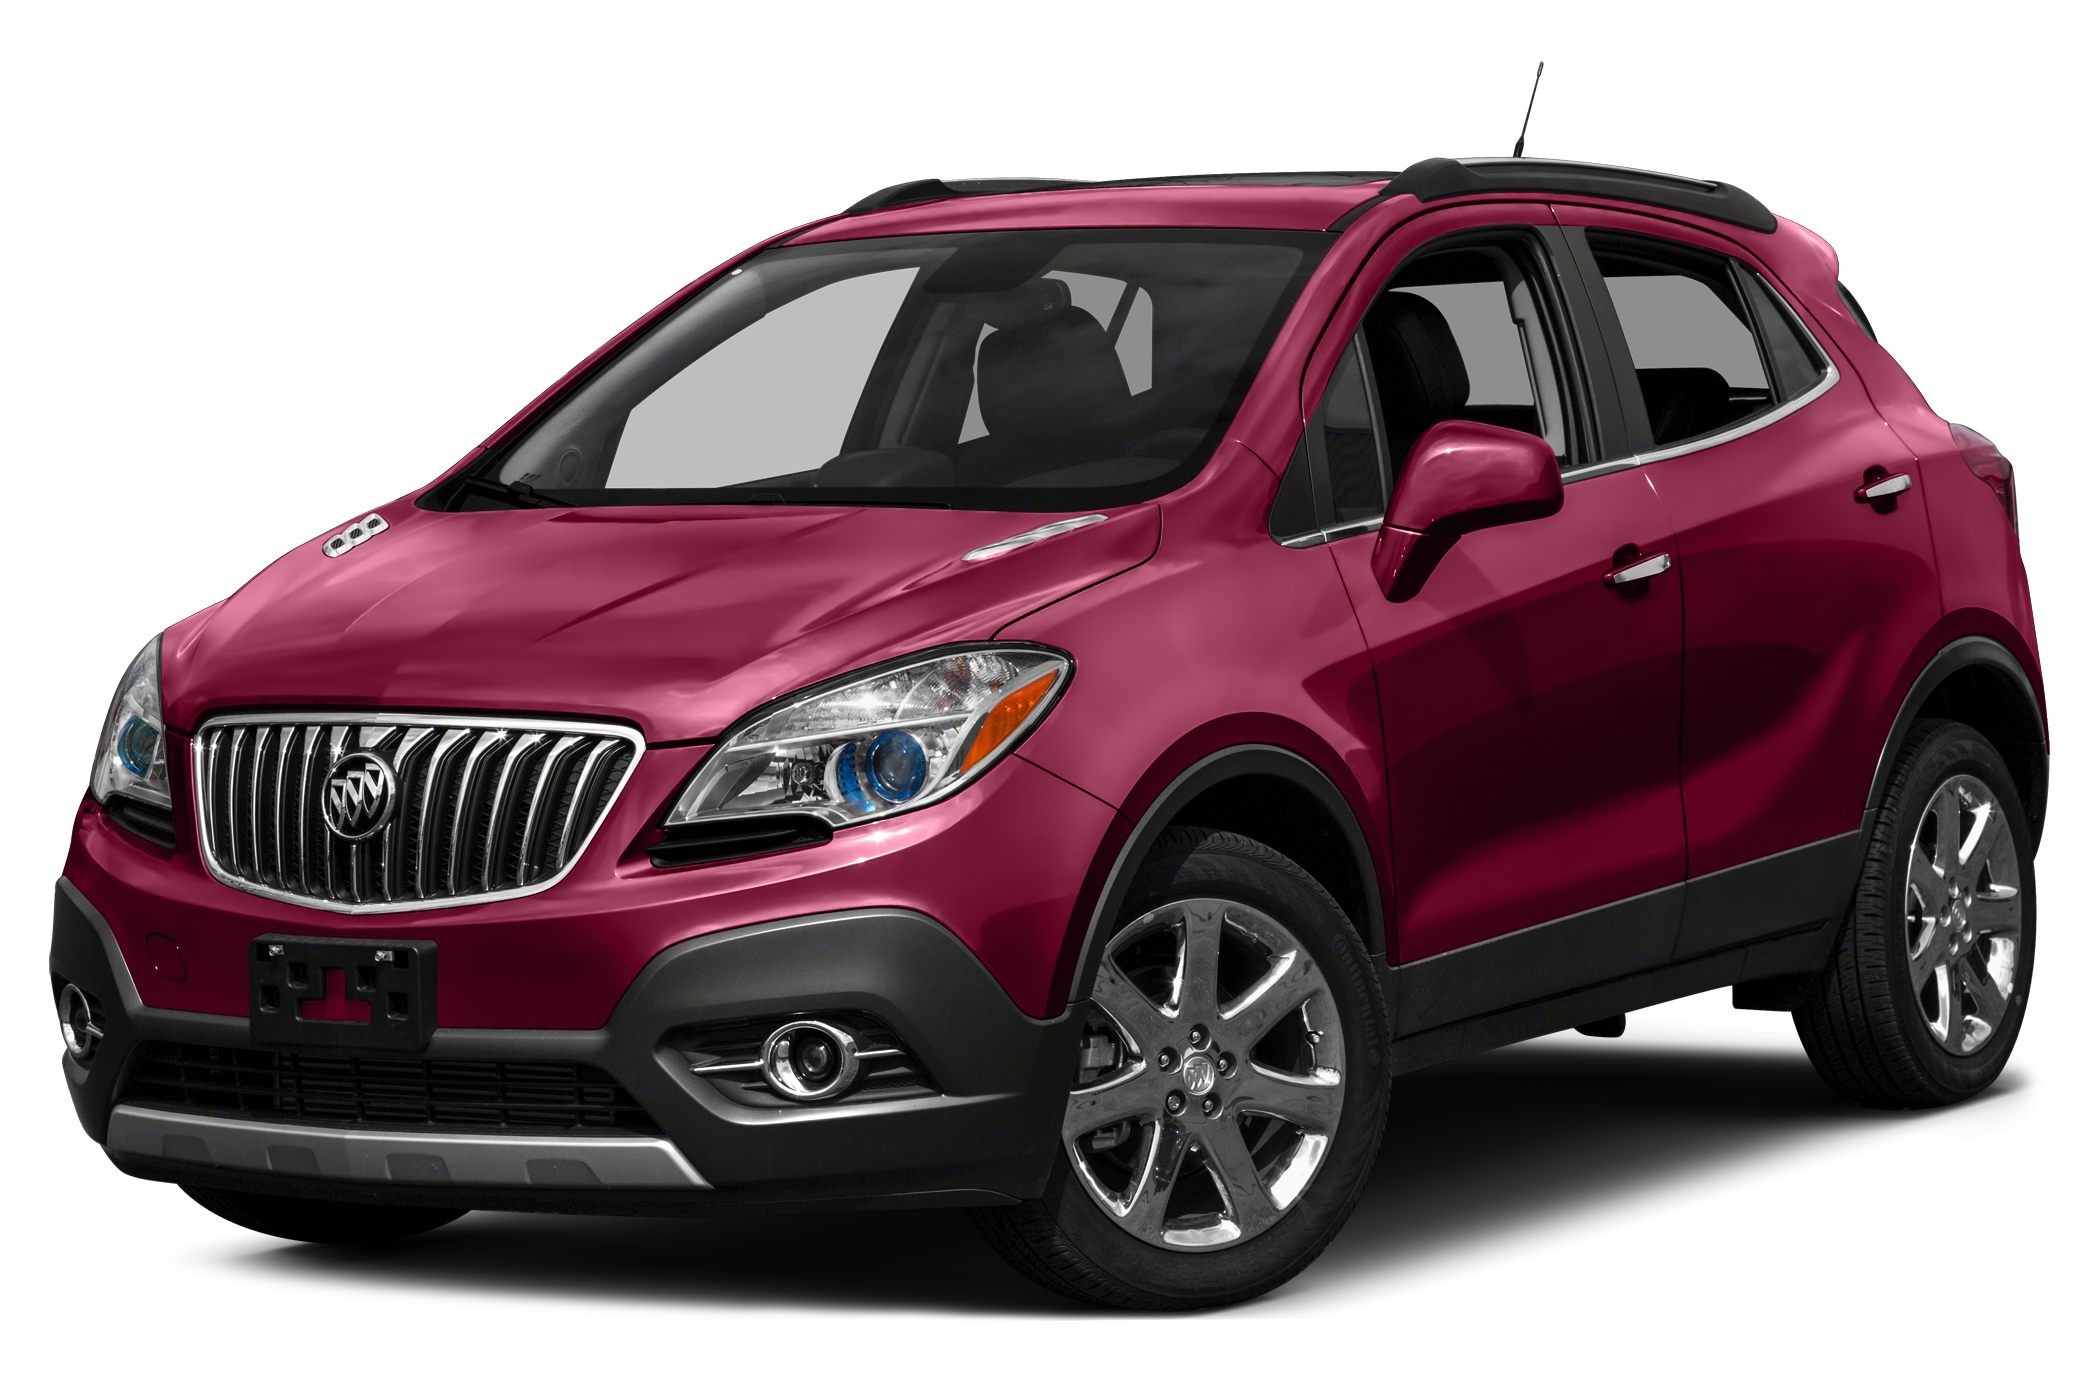 2013 Buick Encore Convenience SUV for sale in Ocoee for $20,900 with 16,748 miles.